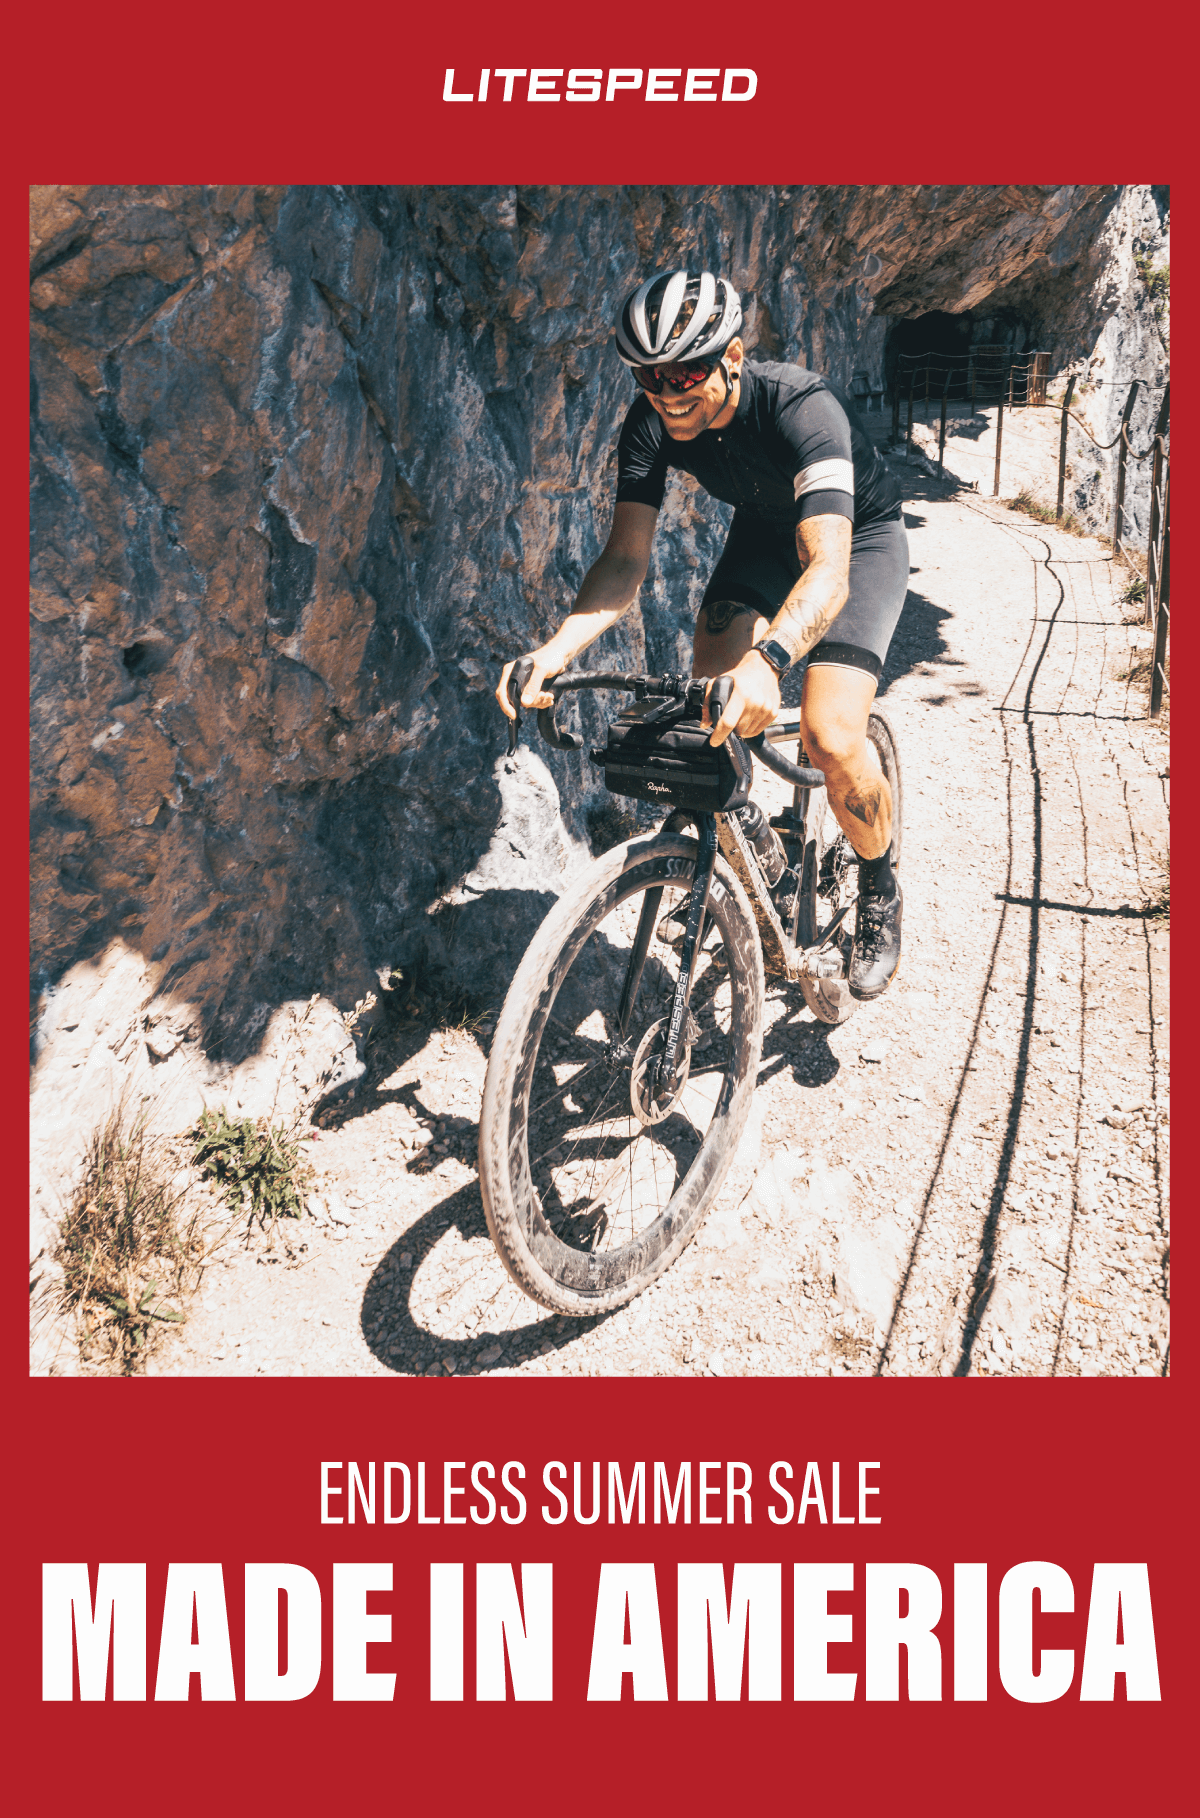 The Litespeed Endless Summer Sale starts now. Shop made-in-the-USA titanium bikes on sale now.